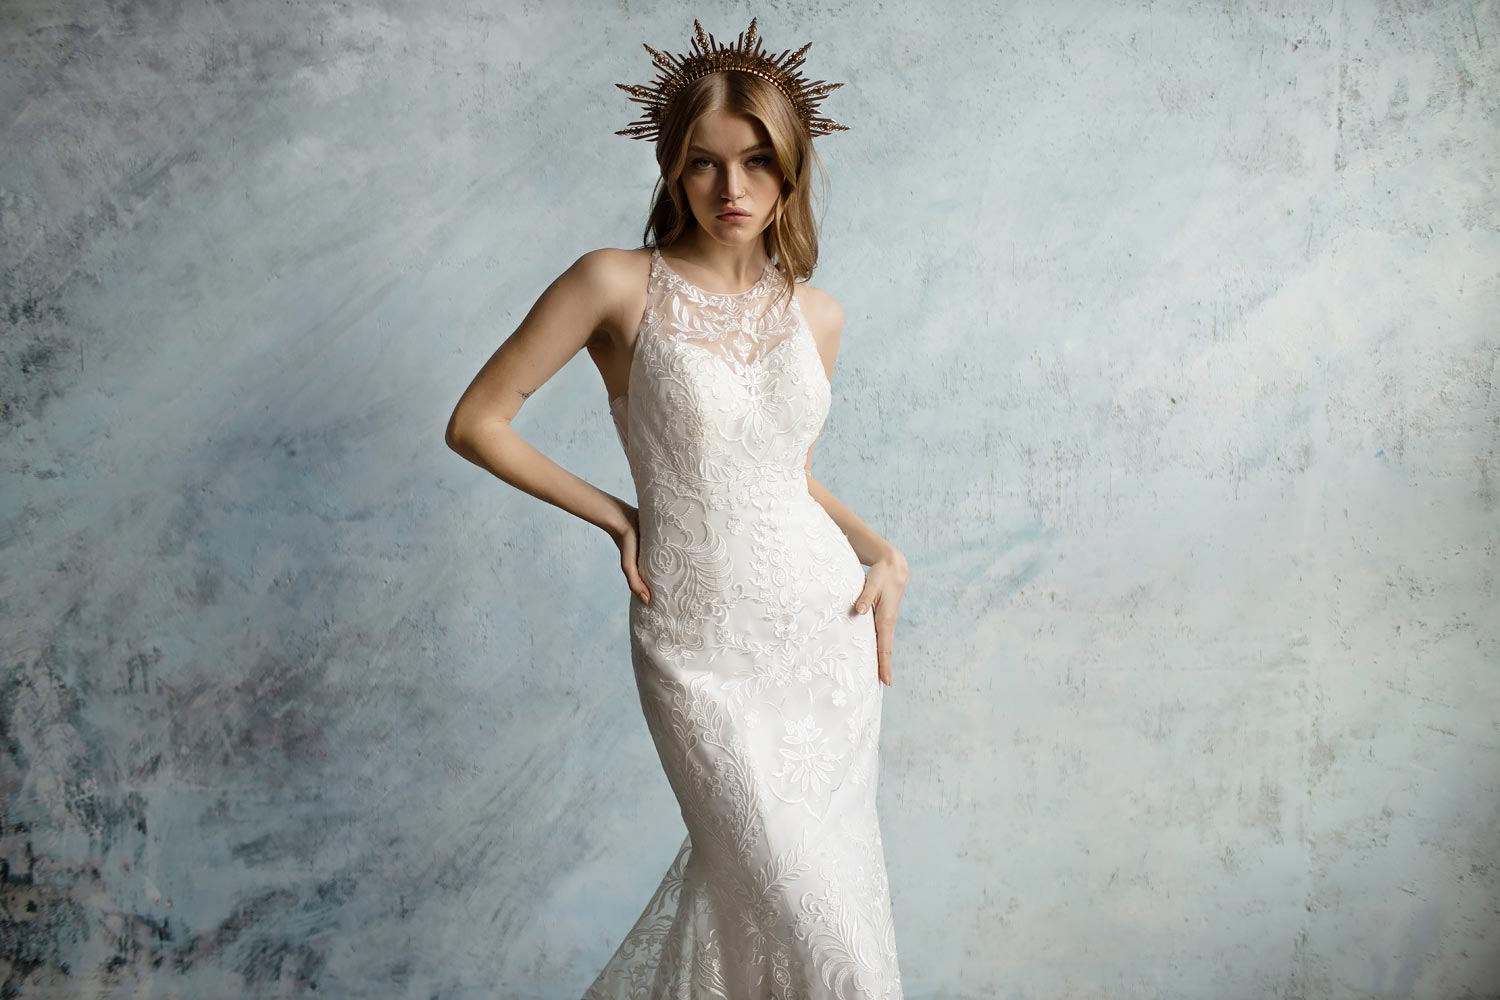 boho wedding dress uk boho wedding dresses london boho wedding dress shops near me wedding dress 22